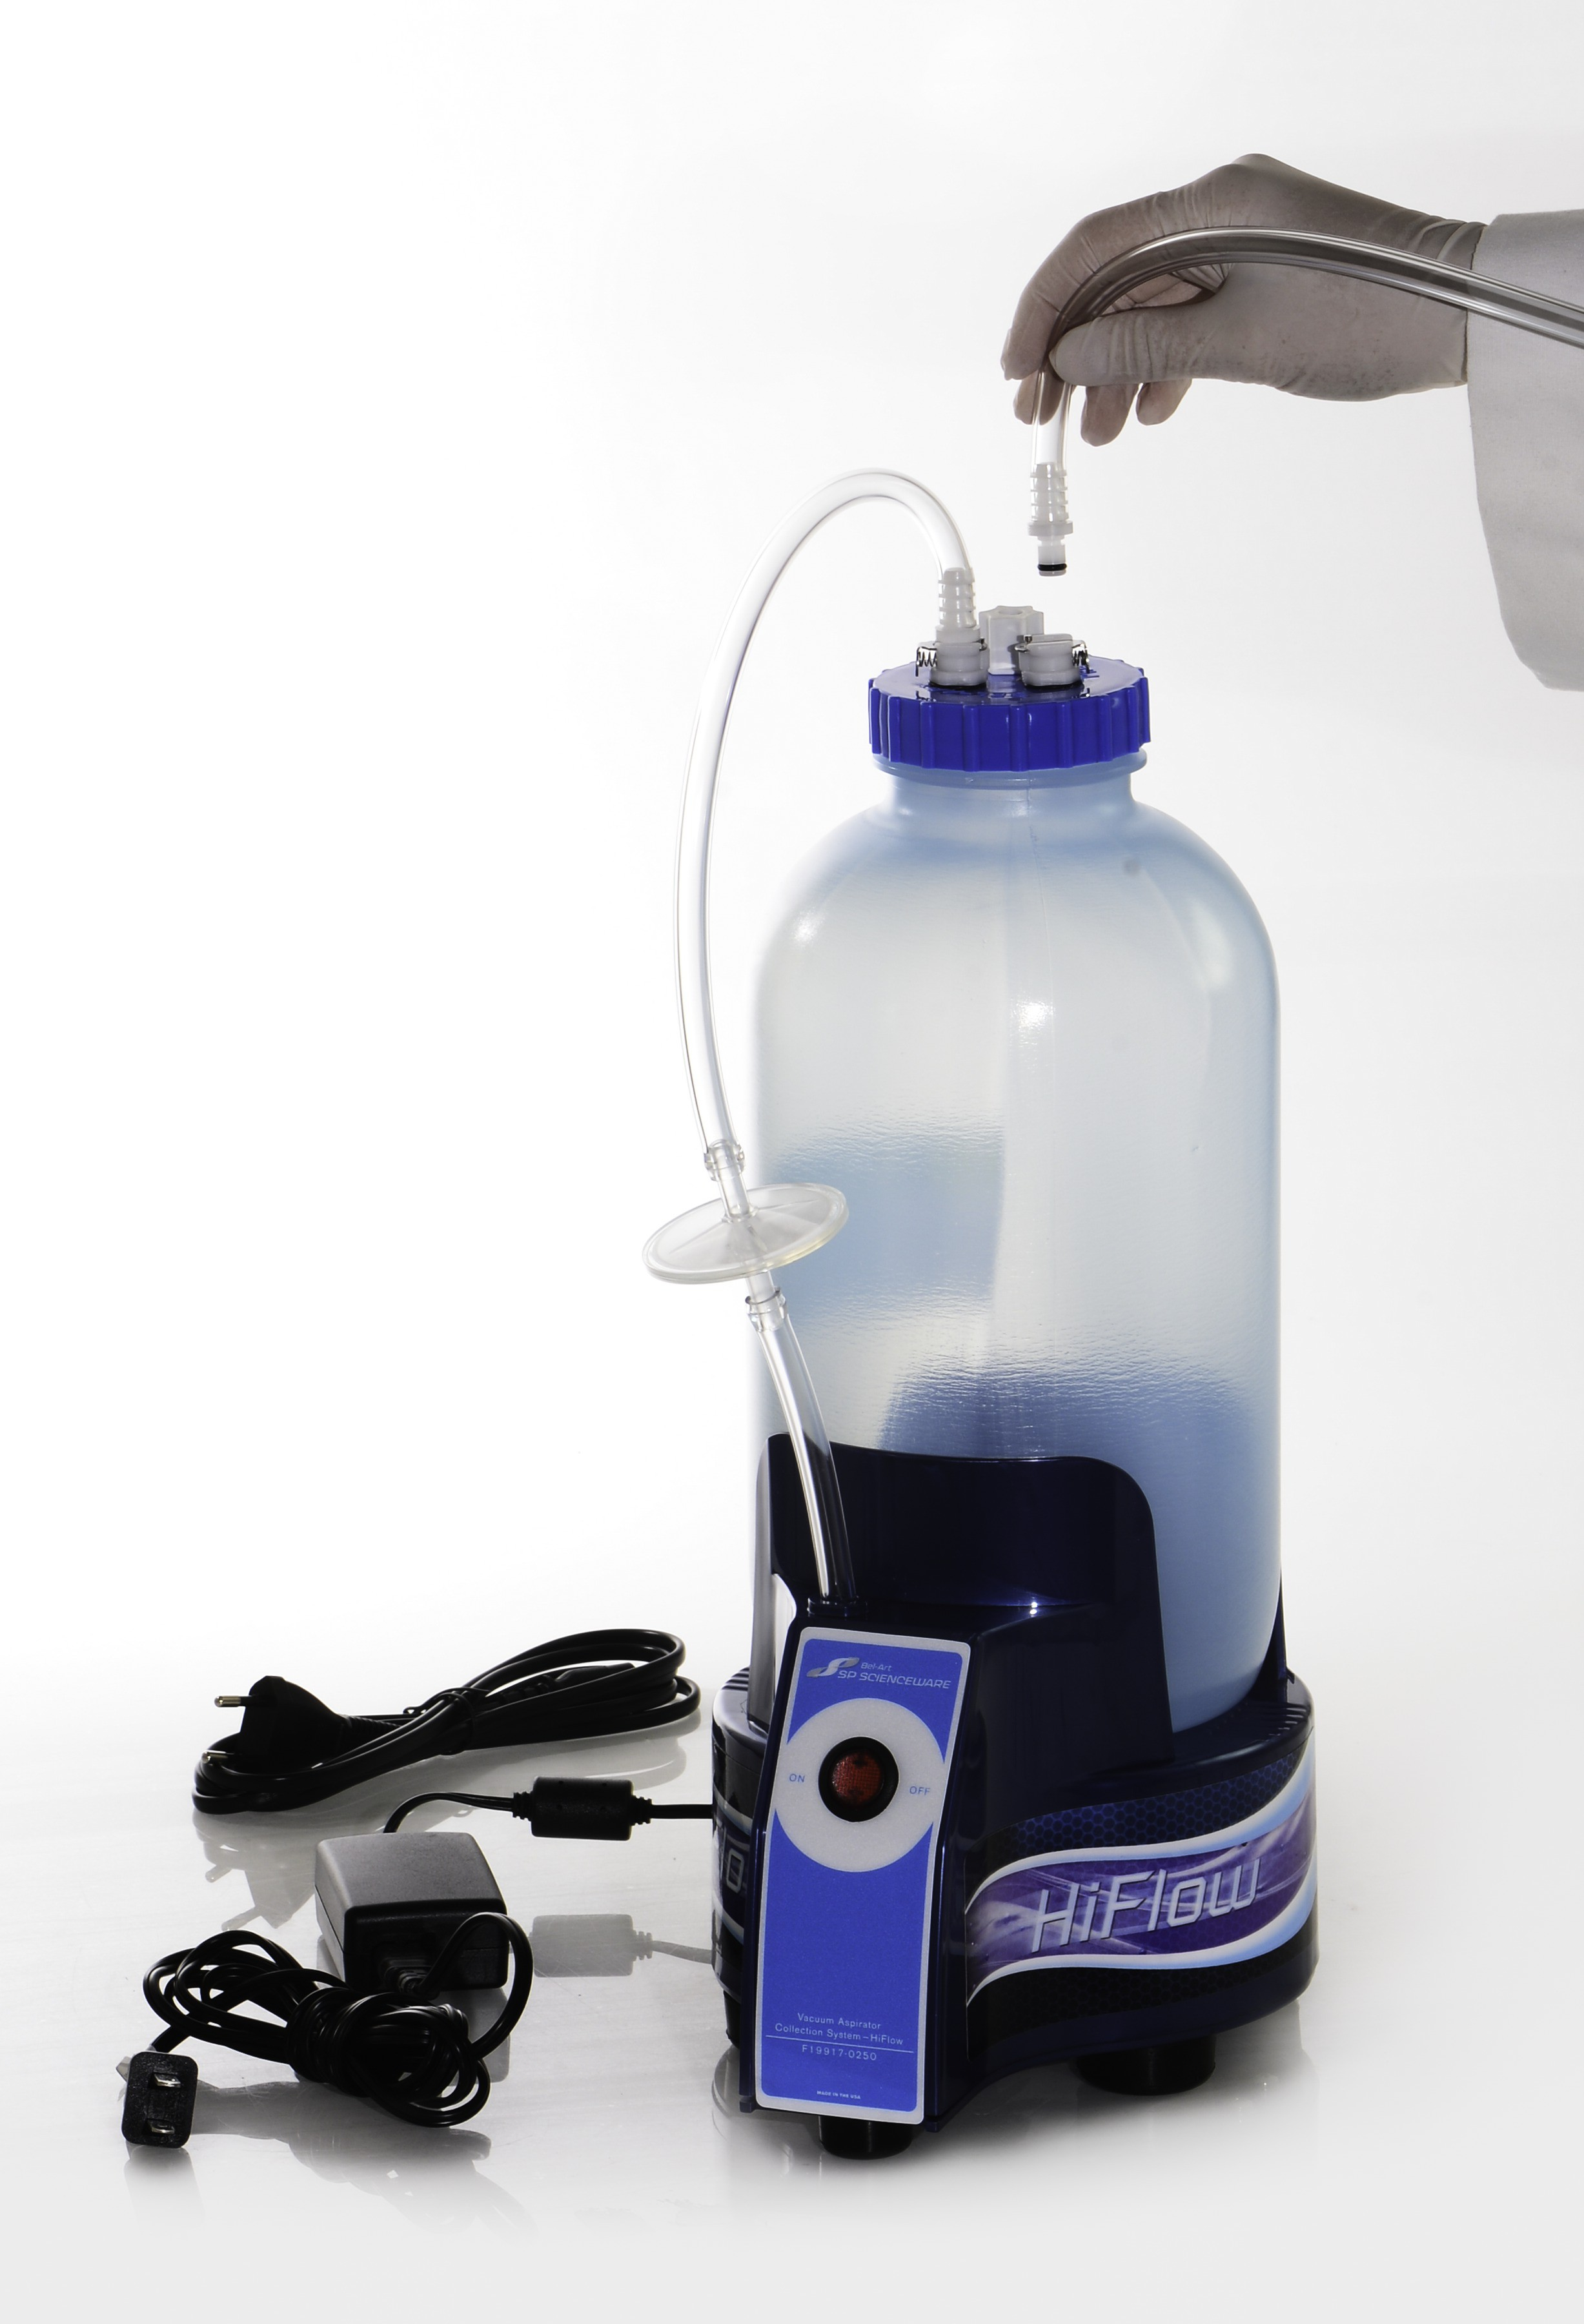 Charming Bel Art HiFlow Vacuum Aspirator Collection System, 1.0 Gallon Bottle With  Pump